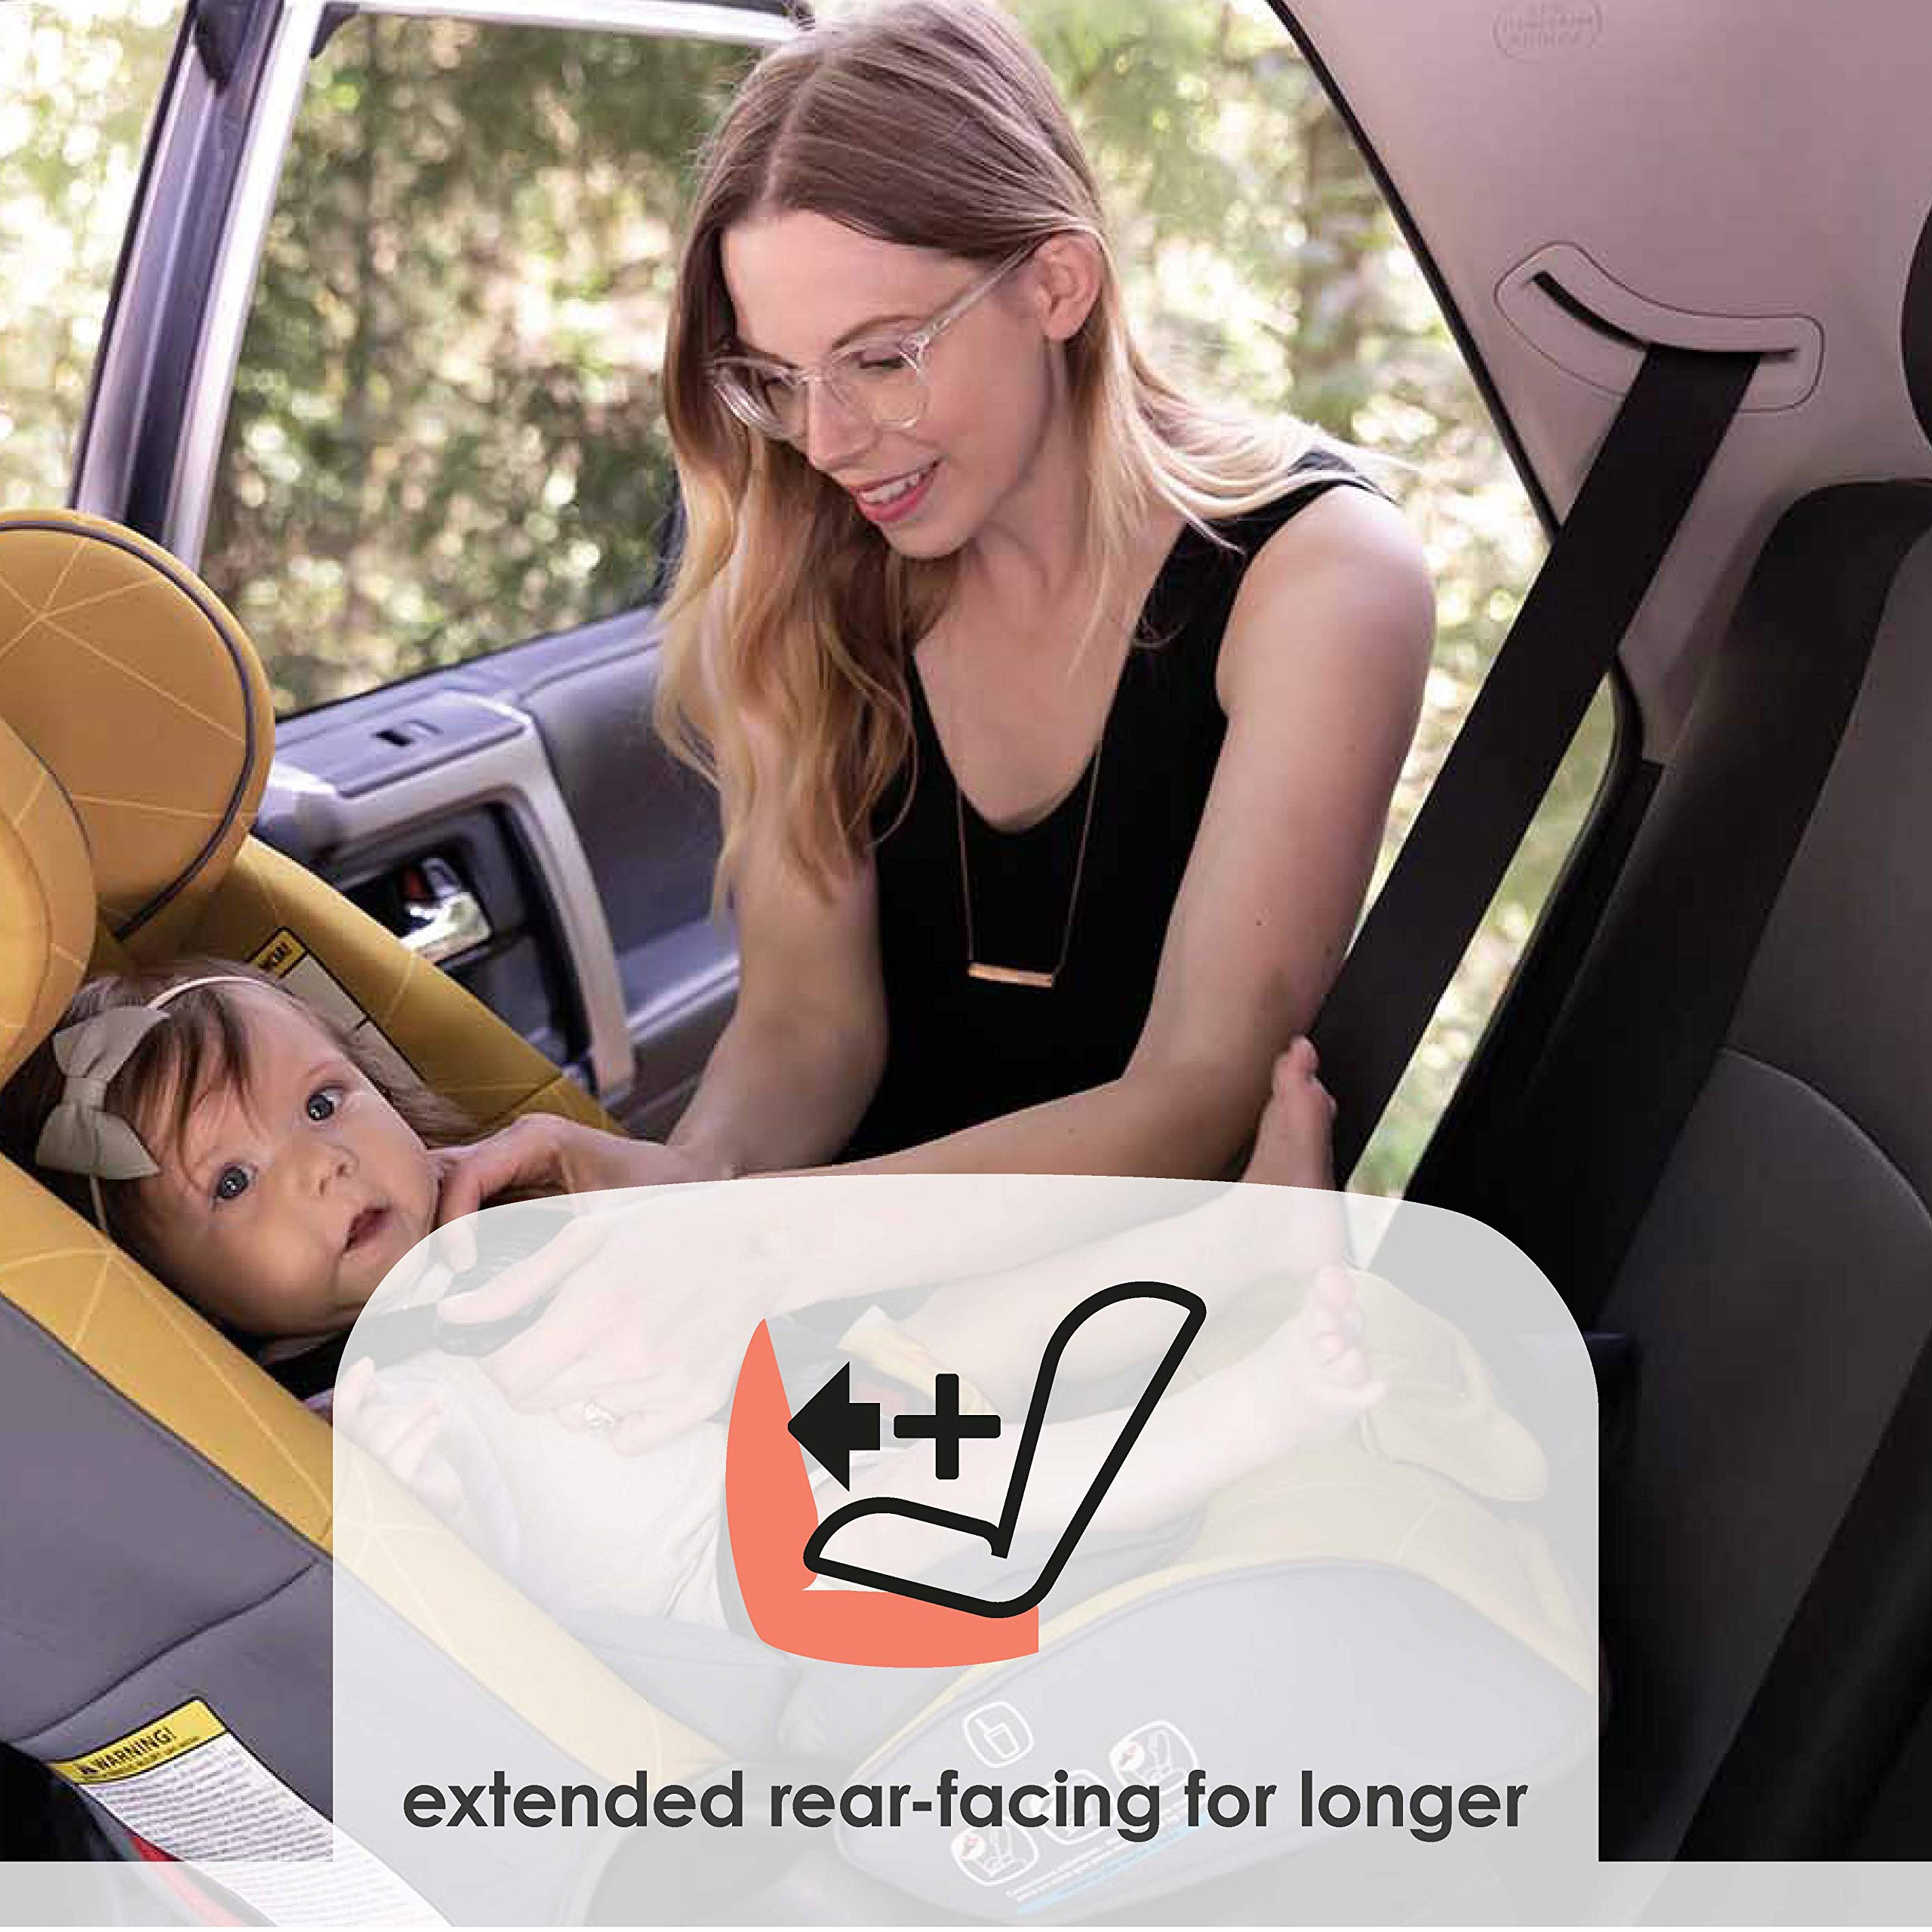 Diono Radian 3RXT All-in-One Convertible Car Seat - Extended Rear-Facing 5-45 Pounds, Forward-Facing to 65 Pounds, Booster to 120 Pounds - The Original 3 Across, Black by Diono (Image #3)